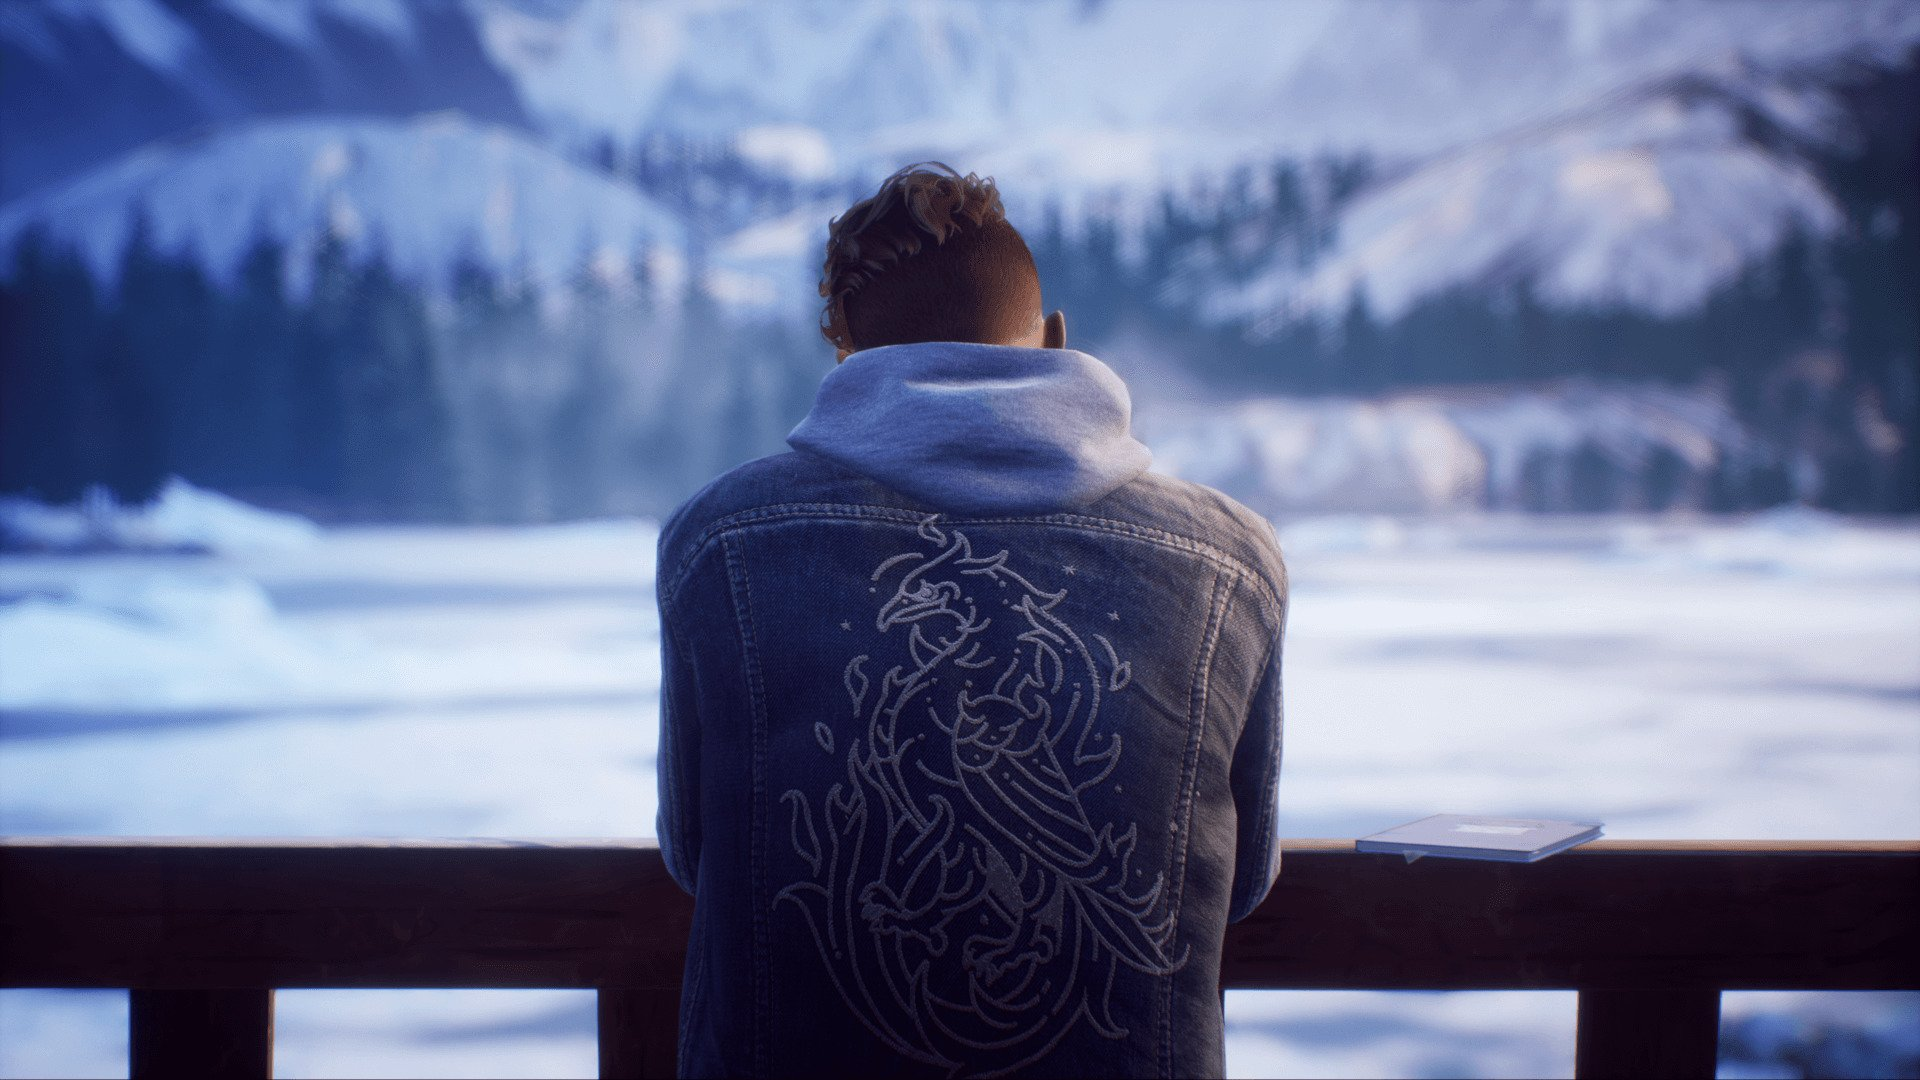 Tell Me Why is Dontnod's next project, a game about identical twins and transgender identity